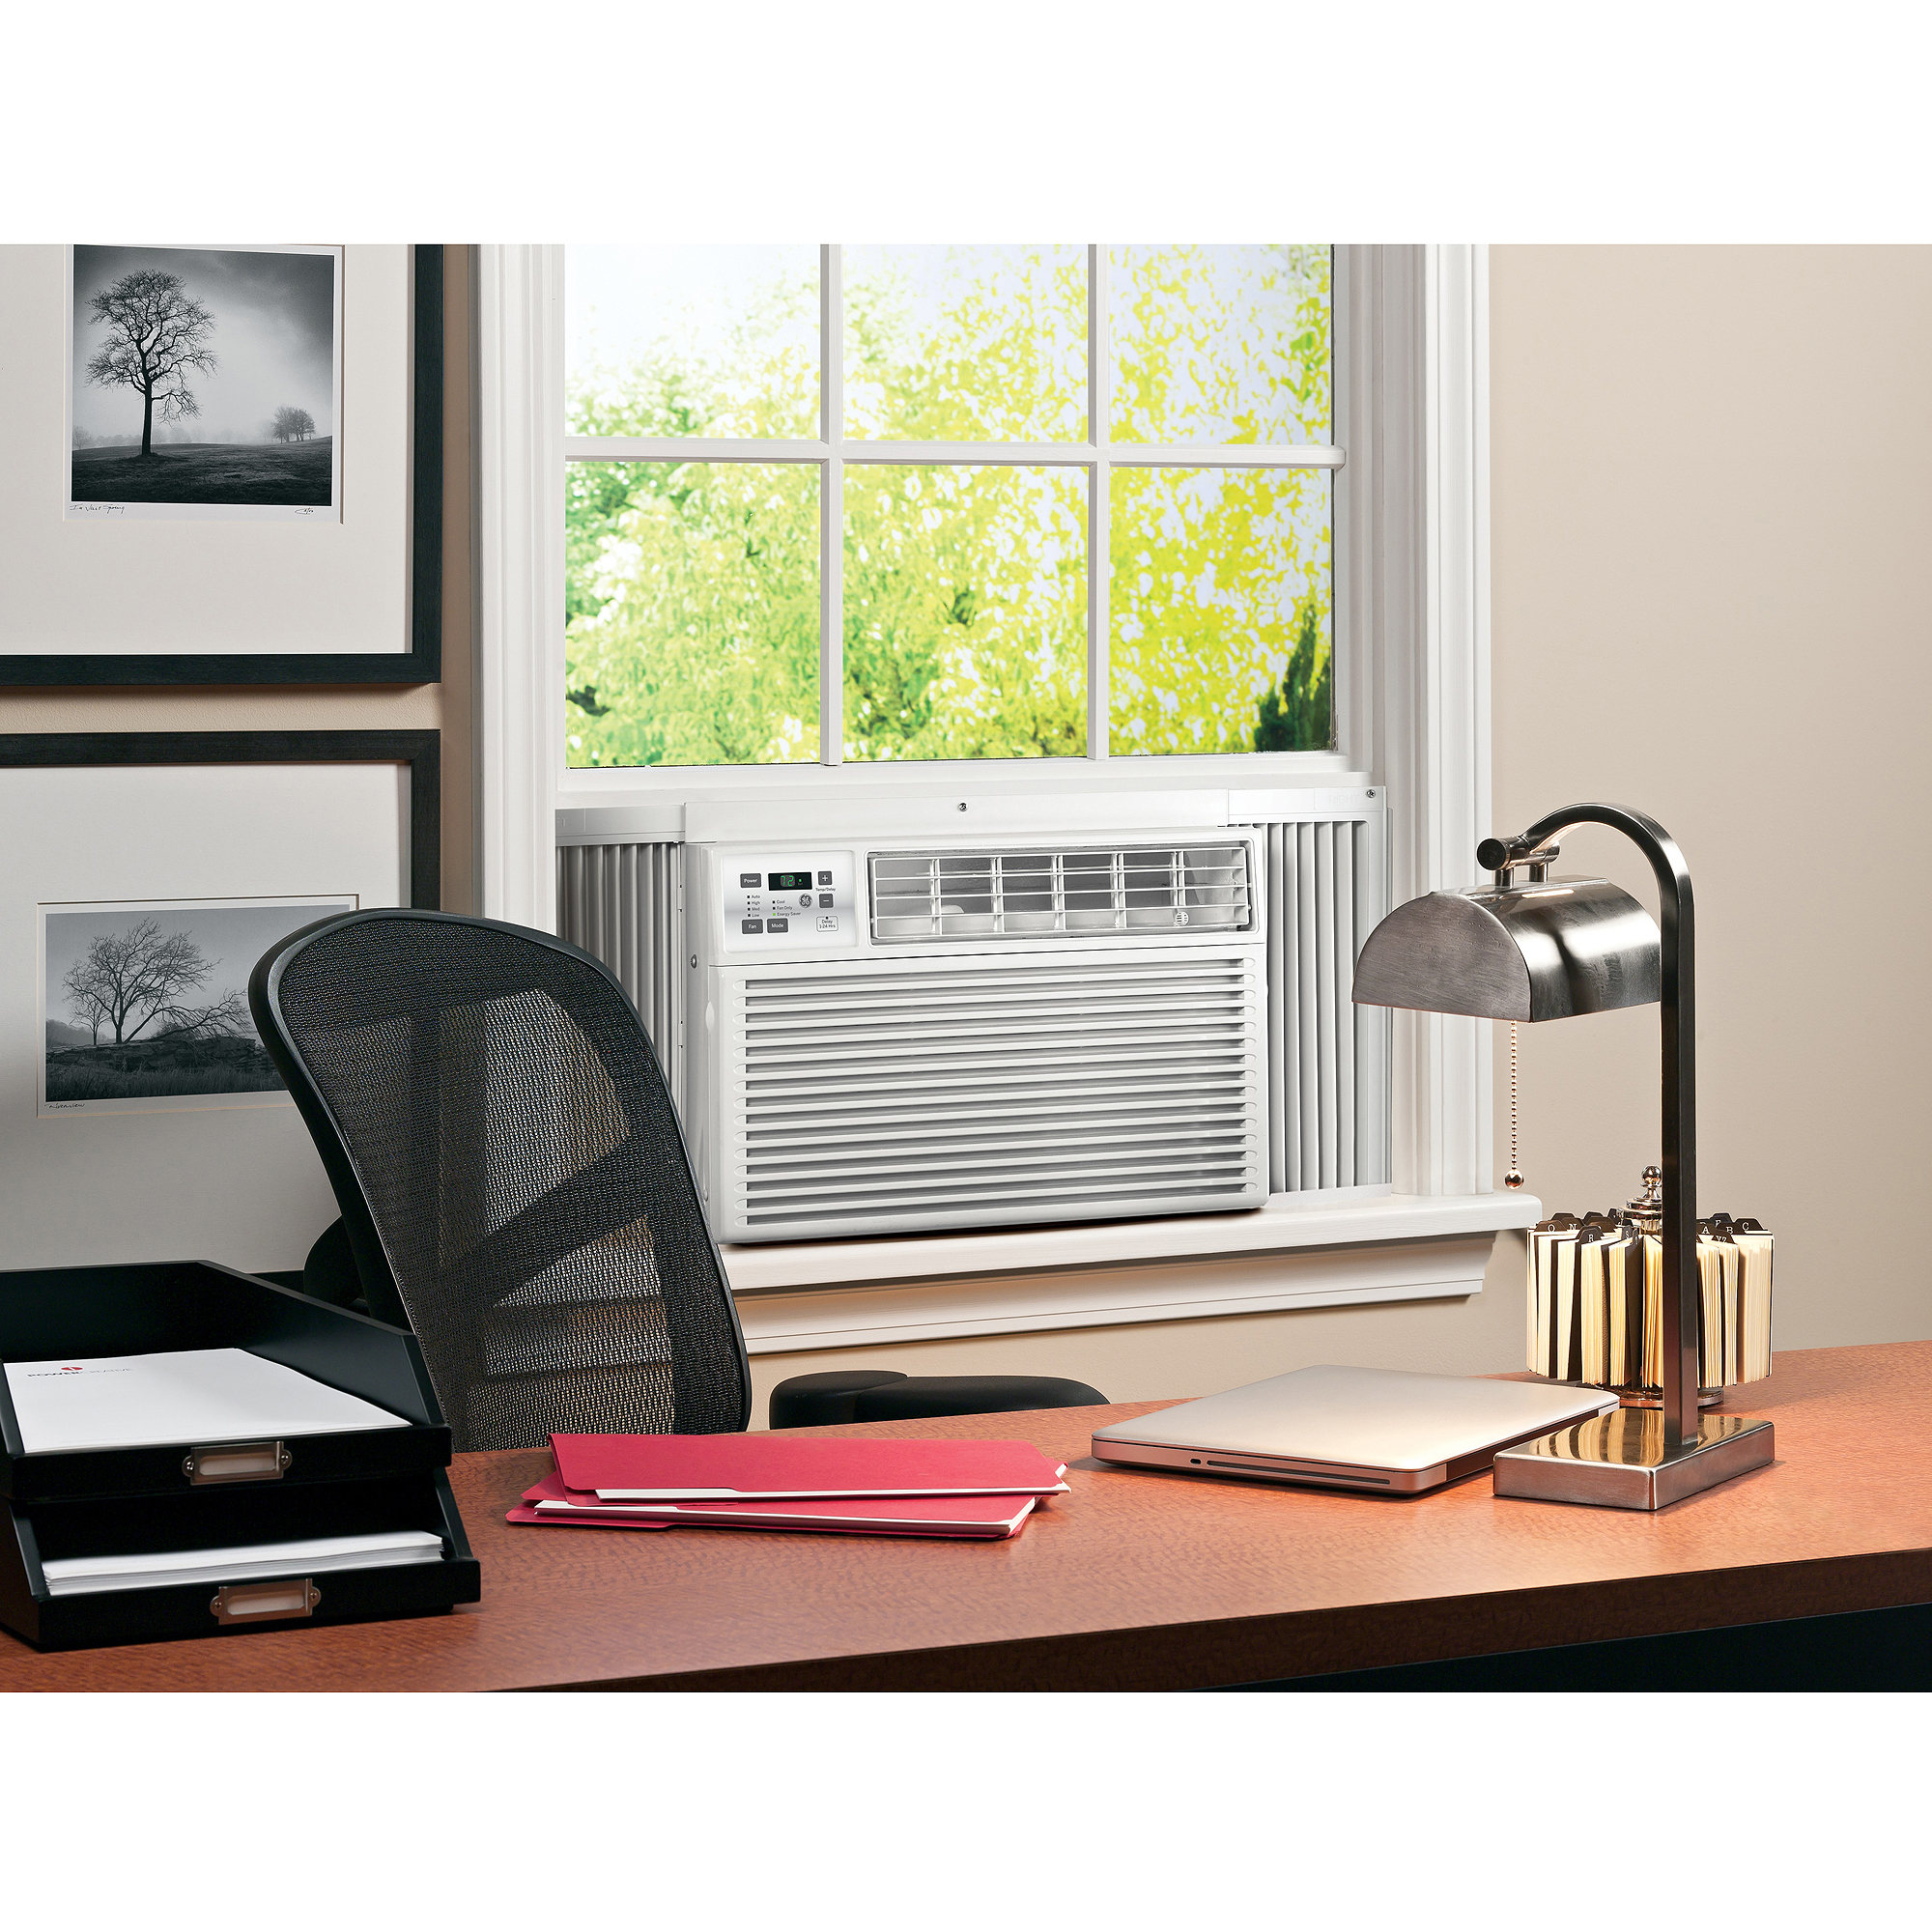 General Electric Ge 6000 Btu Air Conditioner With Remote